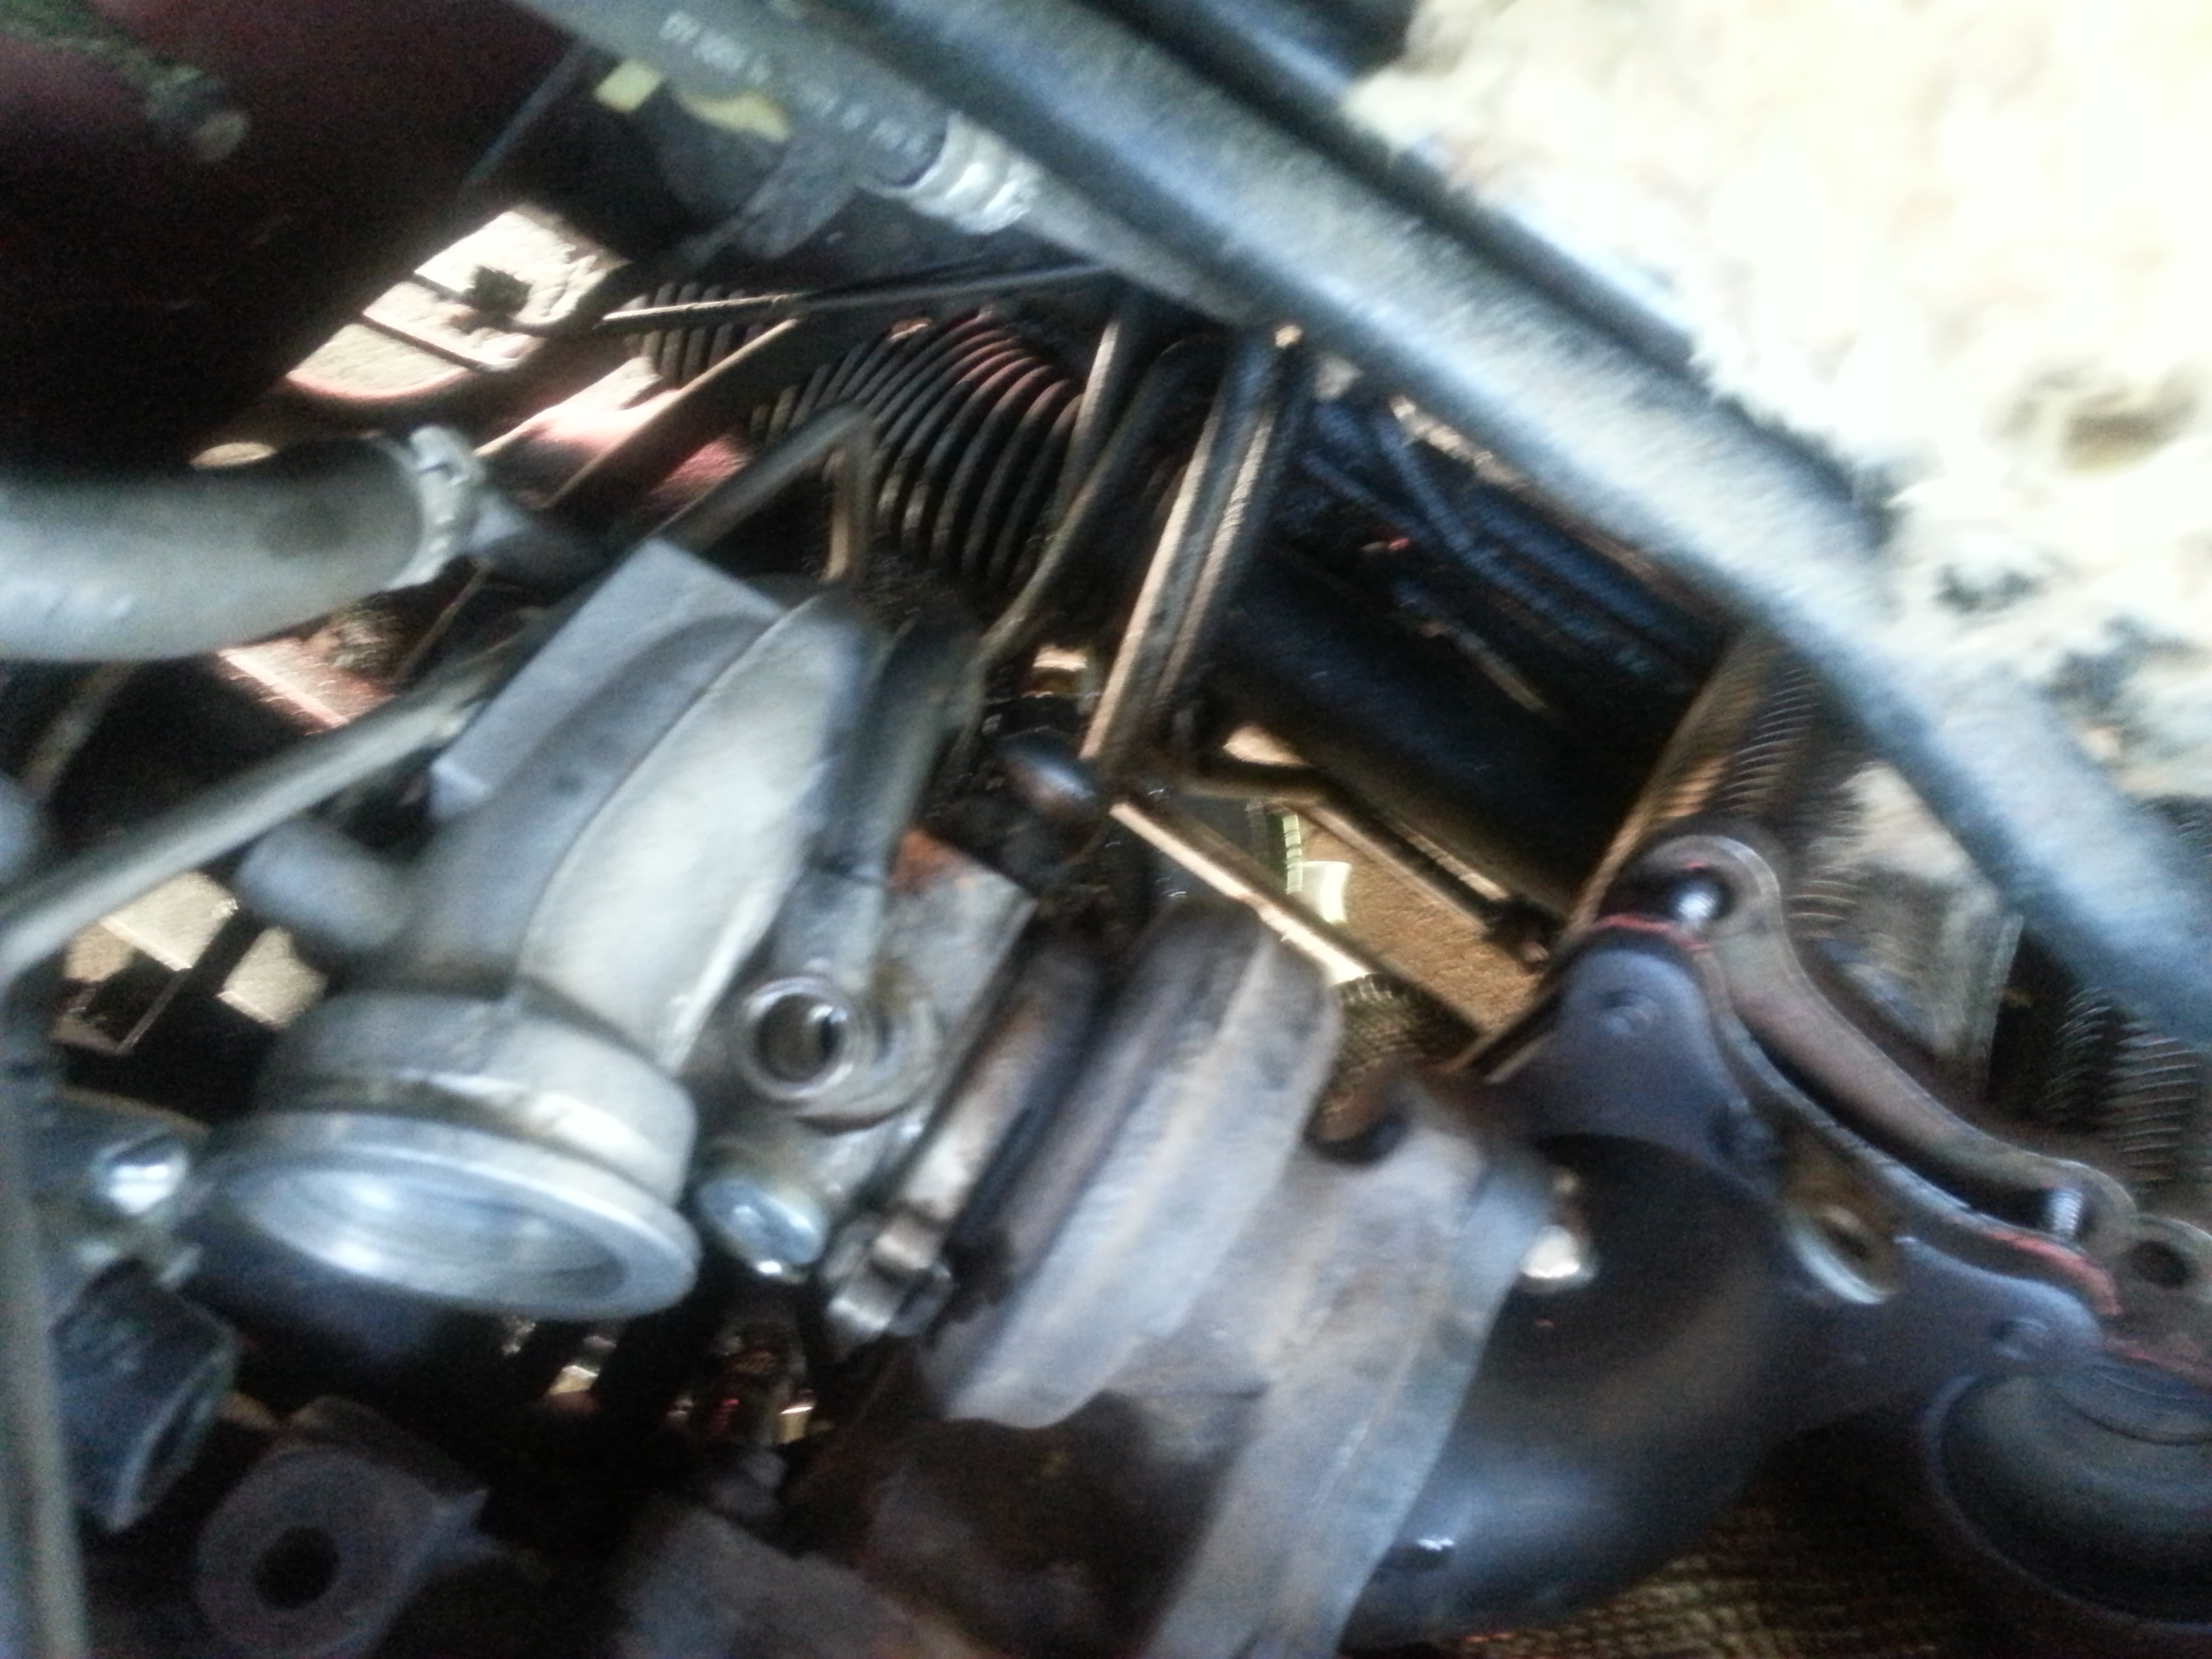 2001 S80 T6 complete turbo replacement guide - Volvo Forums